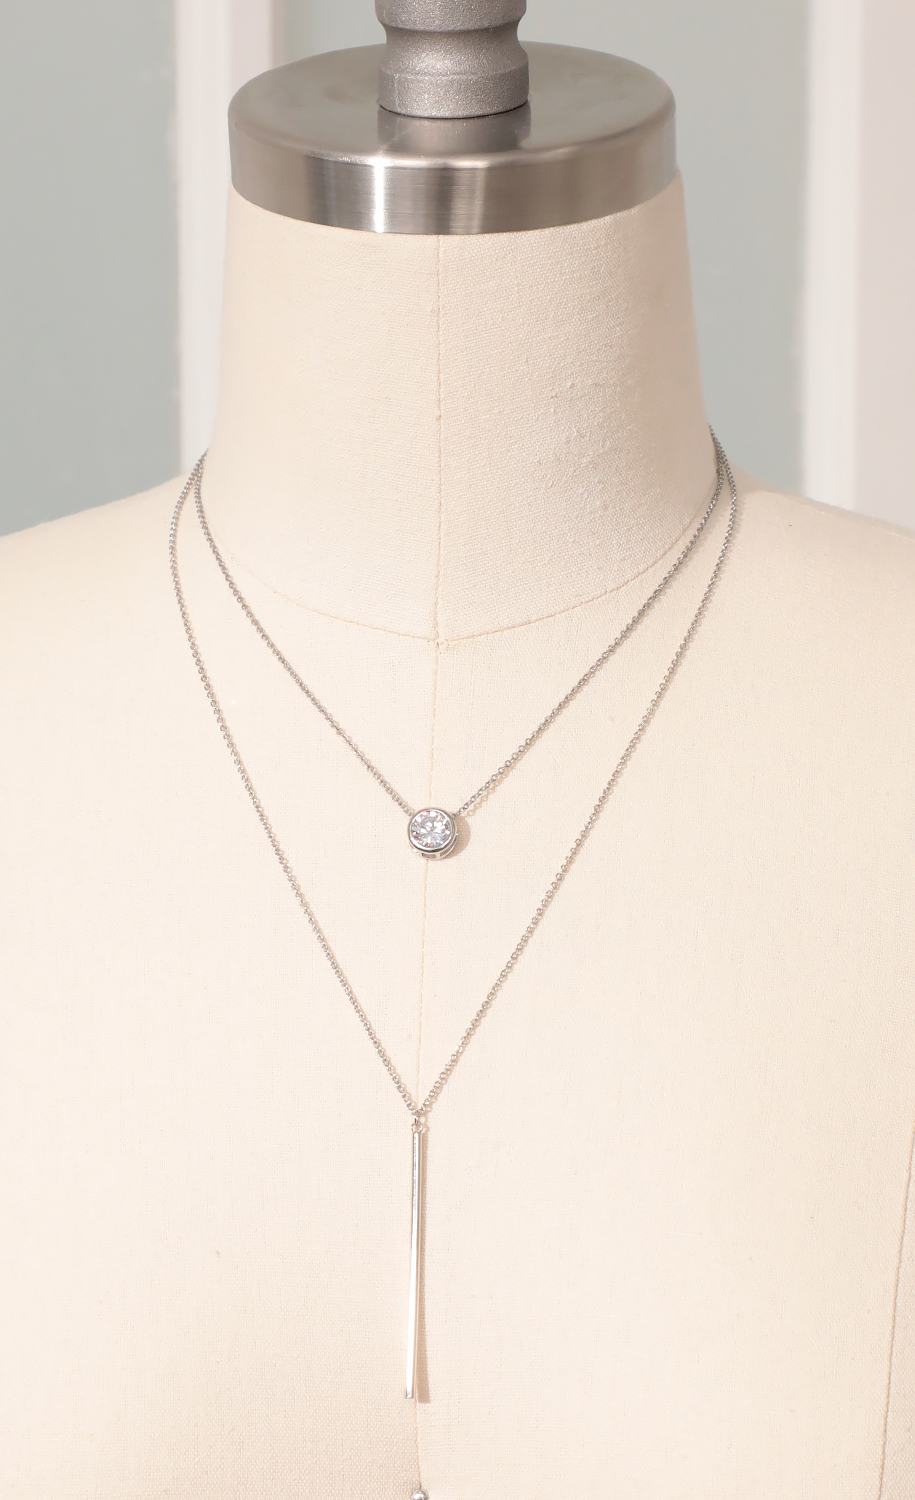 Round Bezel-Set Dainty Layered Necklace in Silver